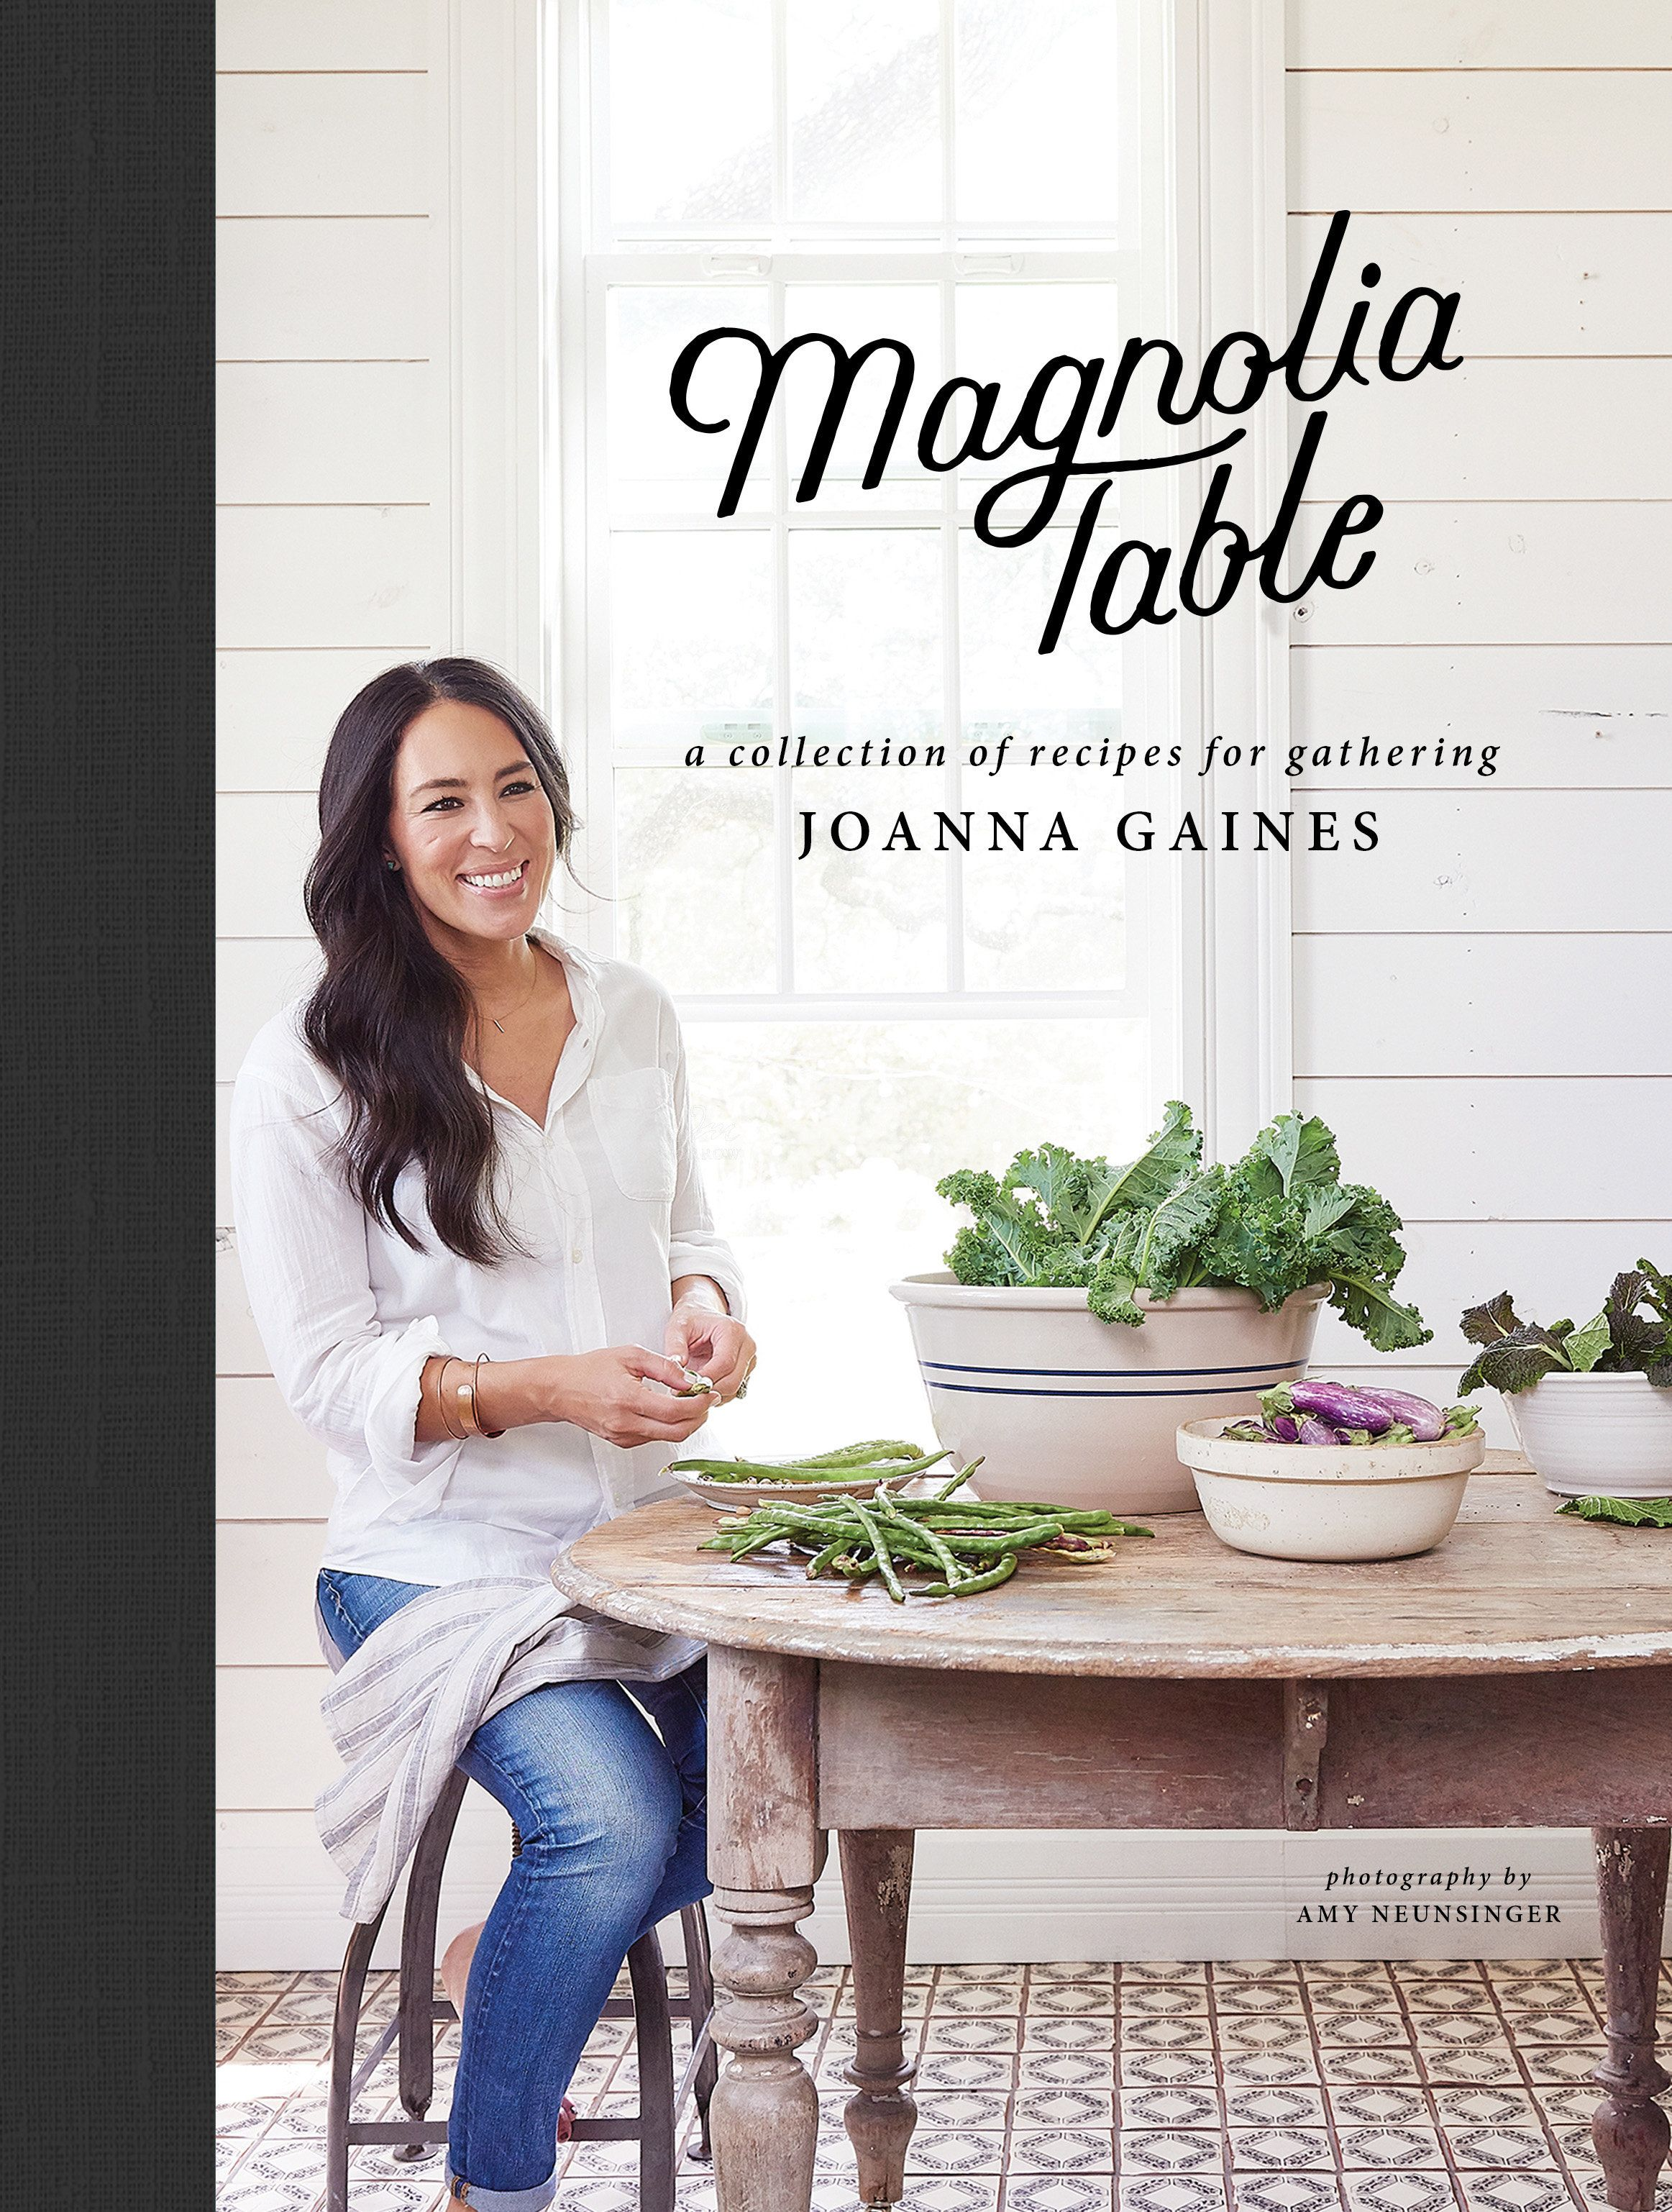 "The cover of Joanna Gaines' new book, <i><a href=""https://www.amazon.com/Magnolia-Table-Collection-Recipes-Gathering/dp/006282015X/ref=sr_1_1?ie=UTF8&qid=1524703577&sr=8-1&keywords=magnolia+table"" target=""_blank"">Magnolia Table</a></i>."